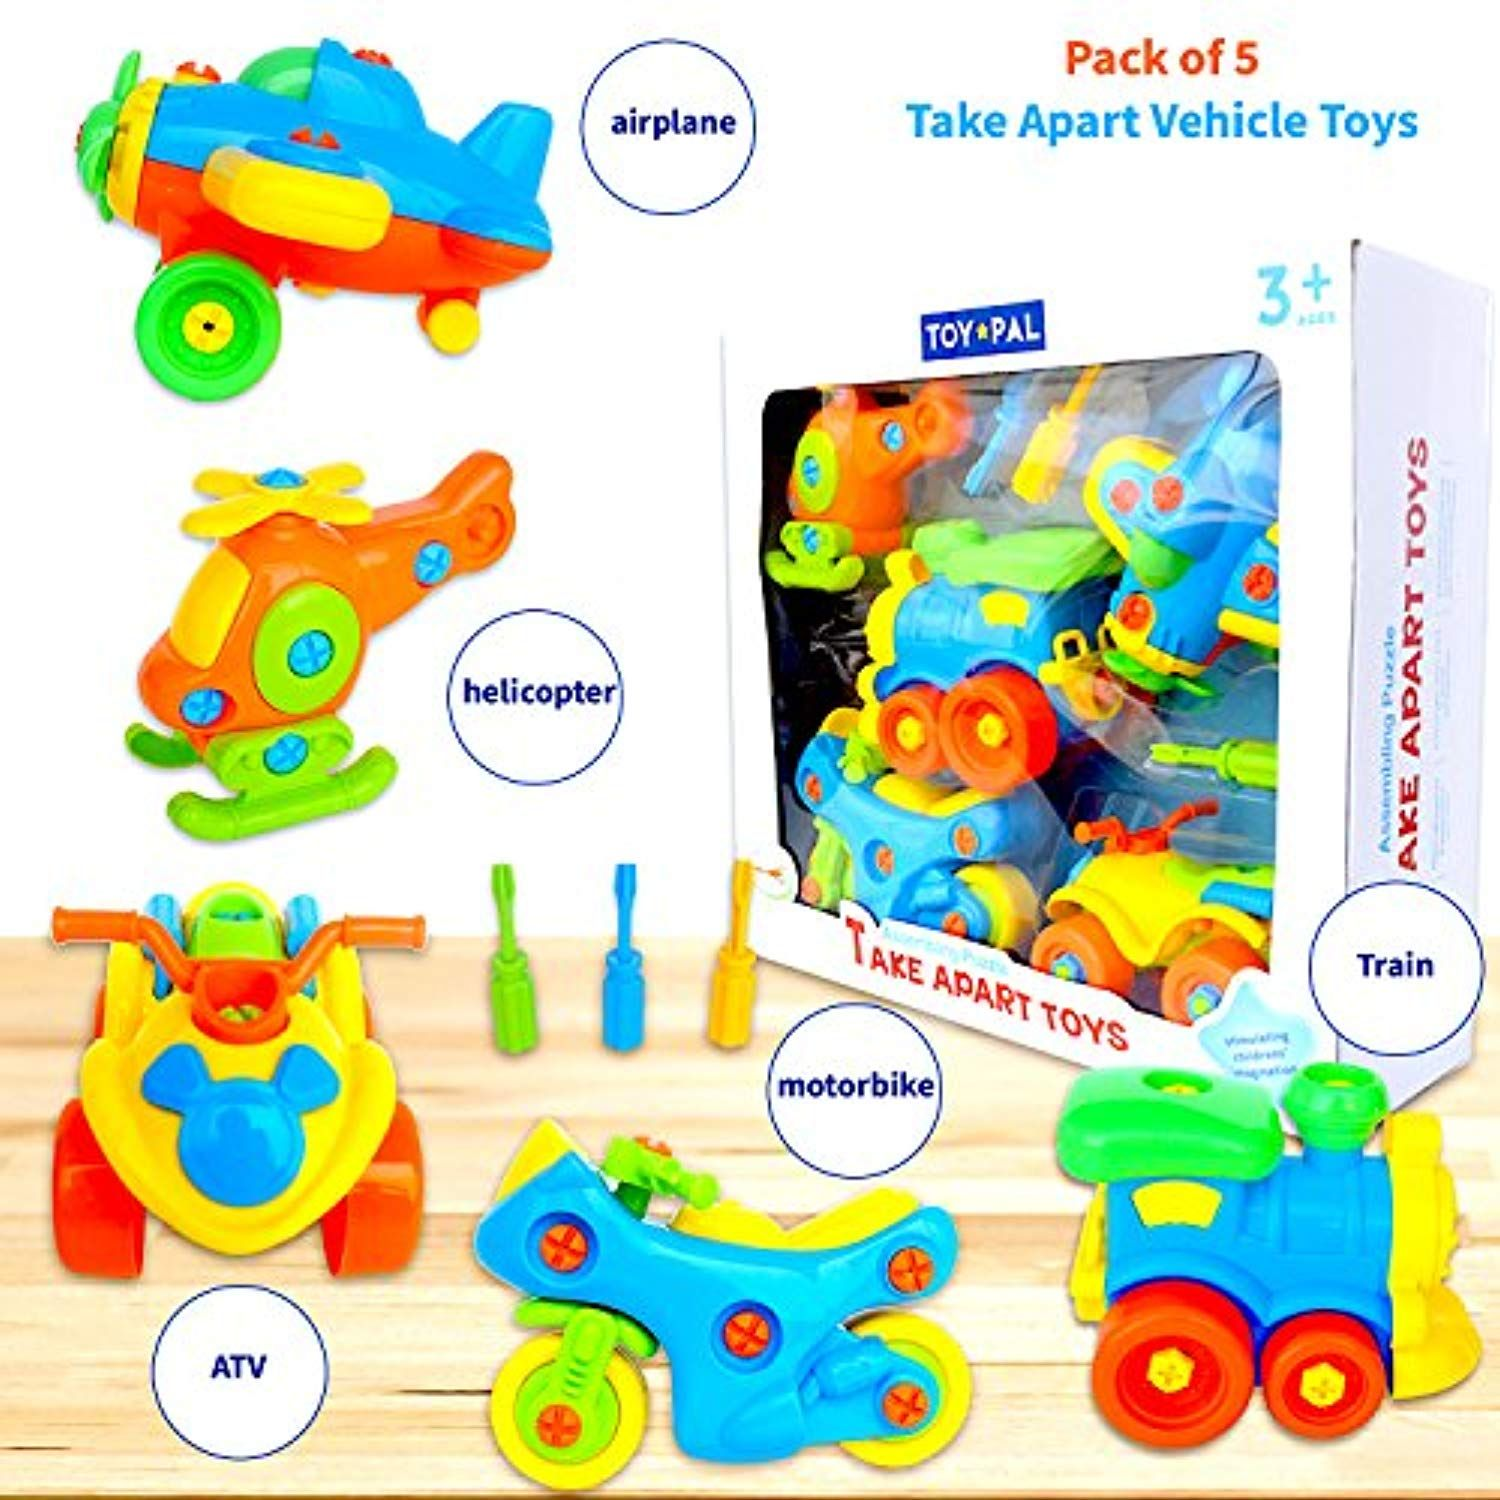 Take Apart Toys (pack of 5), STEM Learning Vehicles Play ...